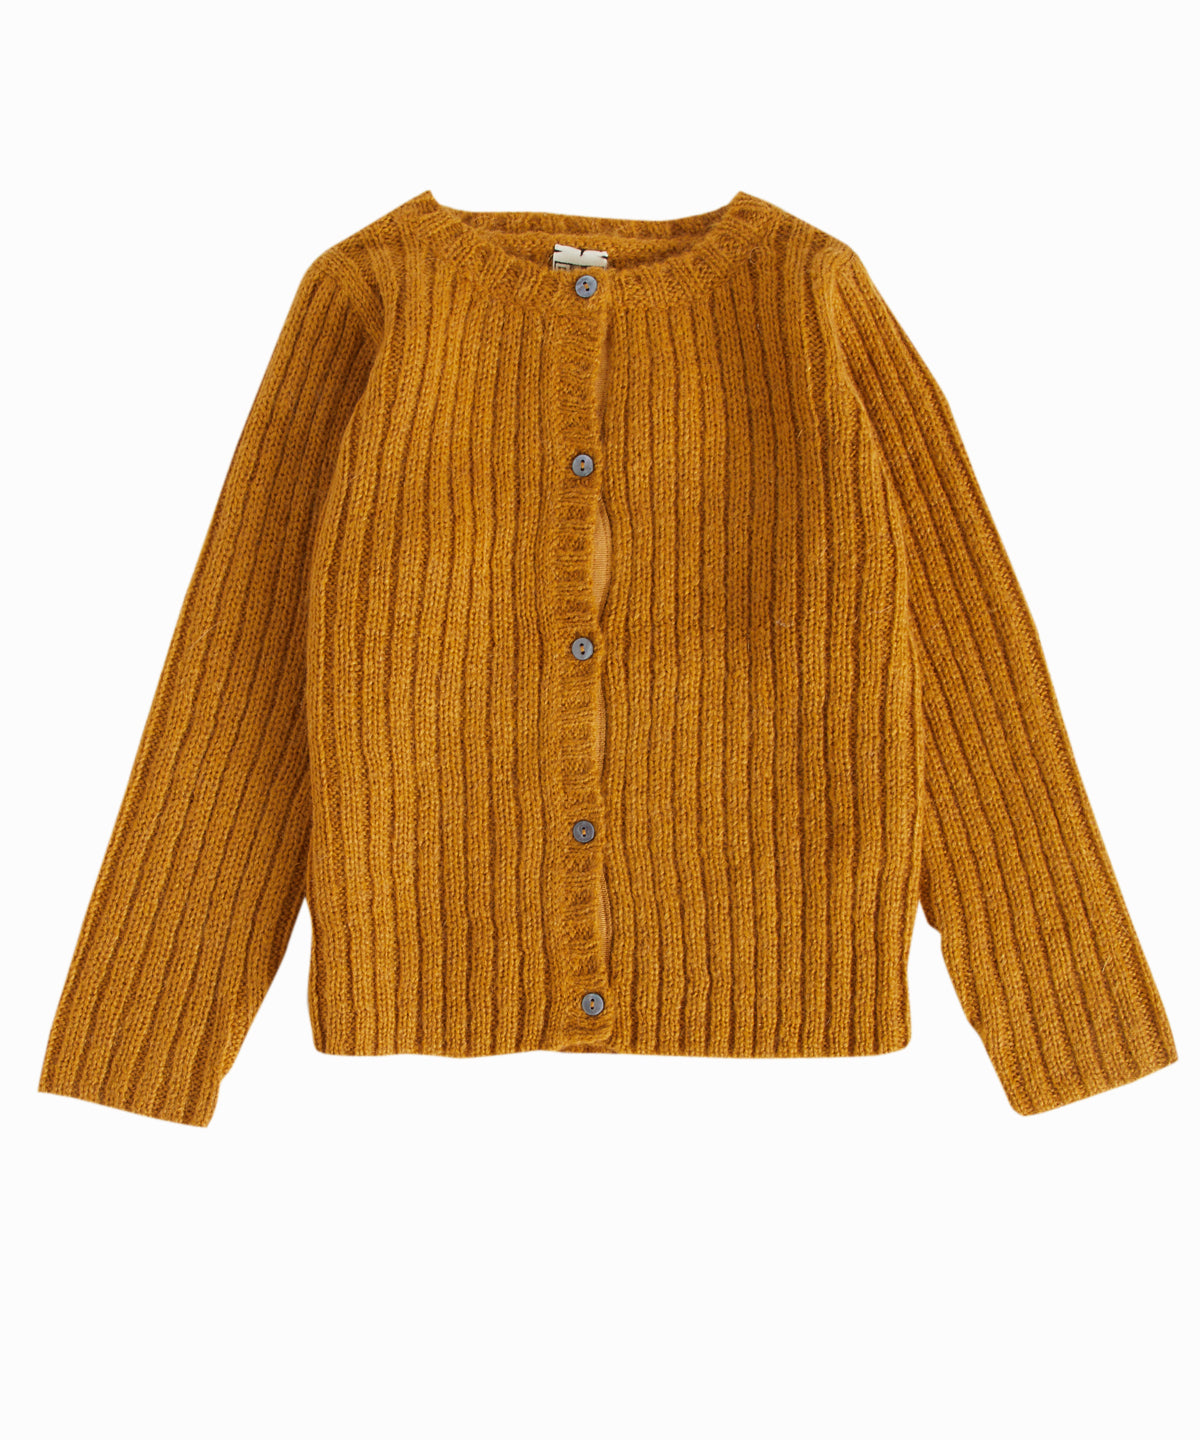 Saffron Cable-Knit Cardigan